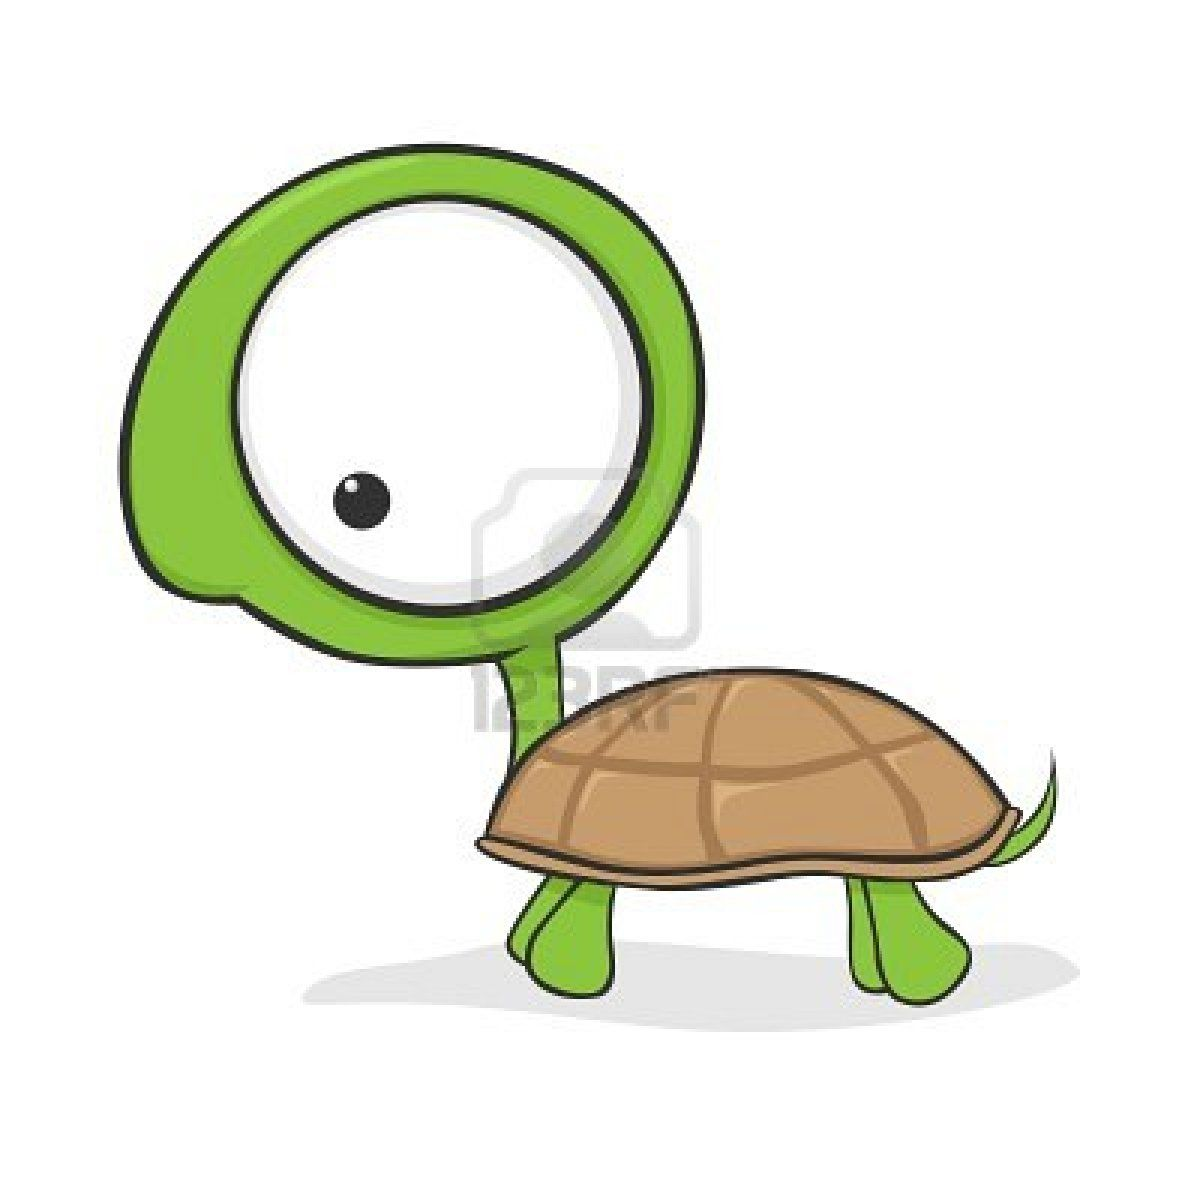 Cartoon Characters Cute : Cute cartoon turtle with huge eyes stock photo